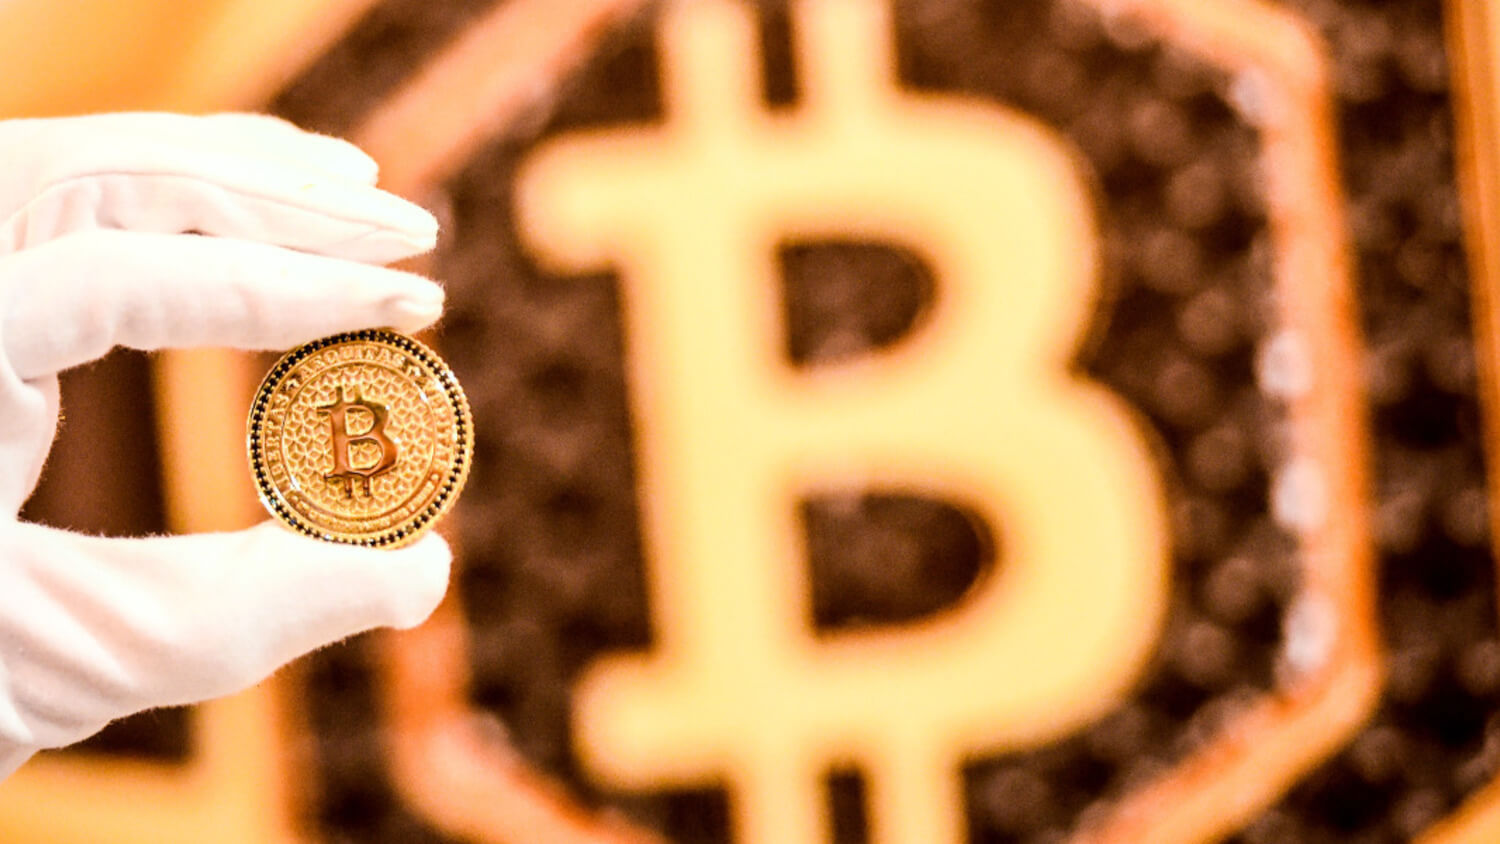 Cryptocurrencies Have Intrinsic Value